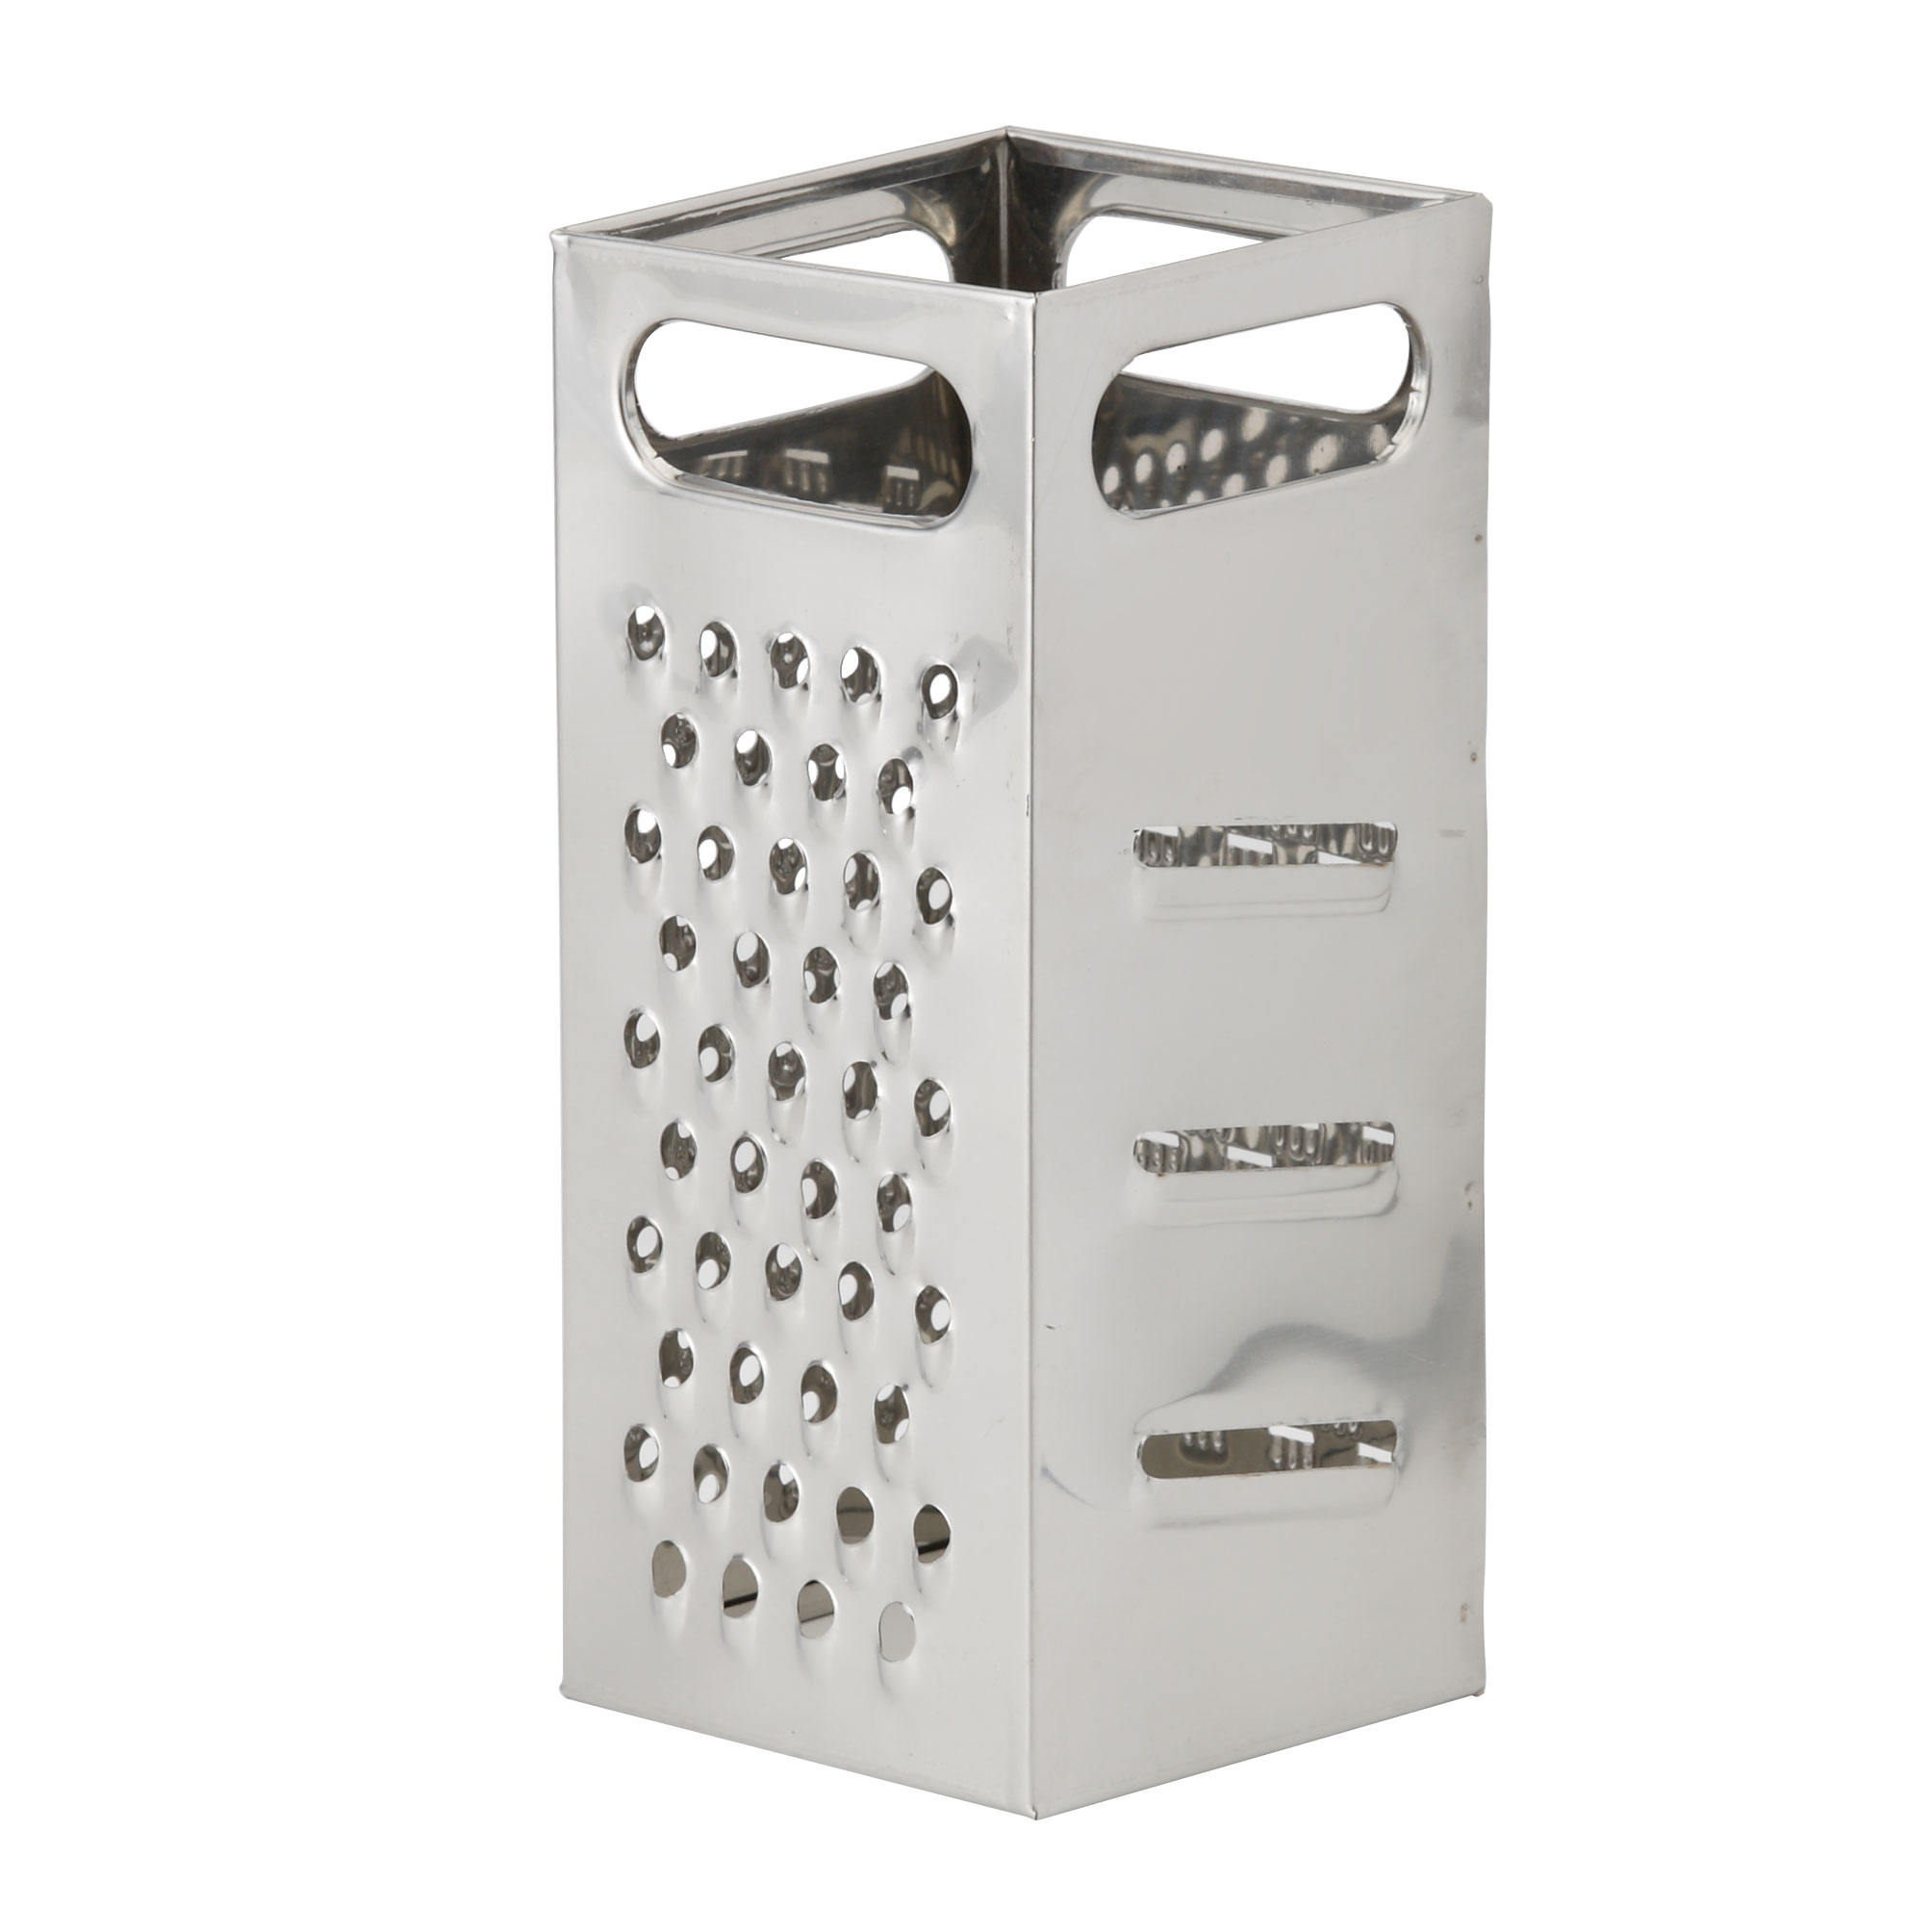 Royal Industries ROY GR 77 grater, box